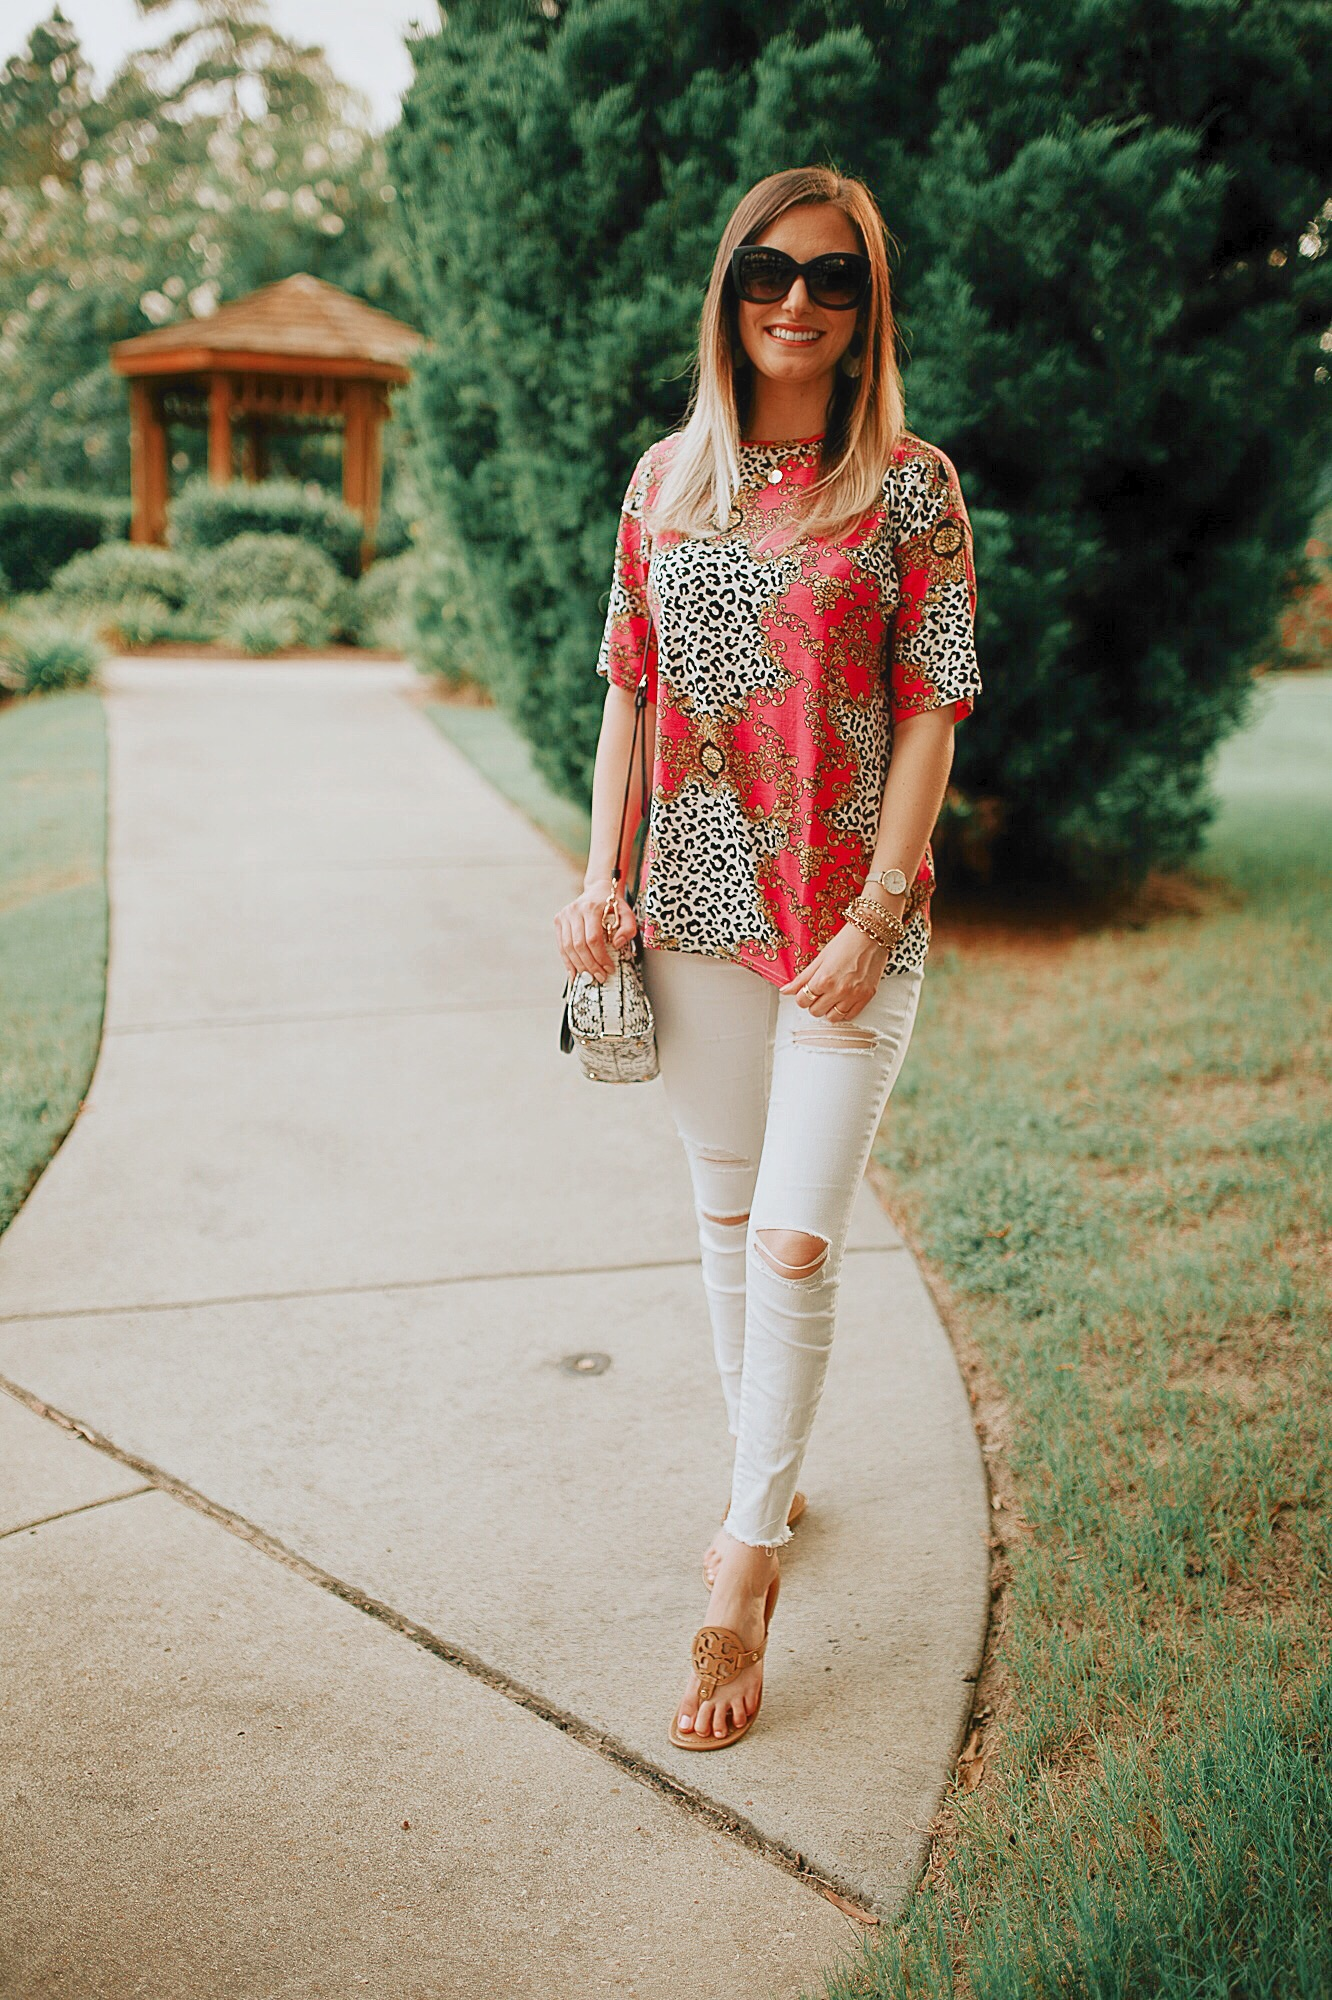 Inexpensive affordable online clothing brands by North Carolin fashion and lifestyle blogger Jessica Linn.